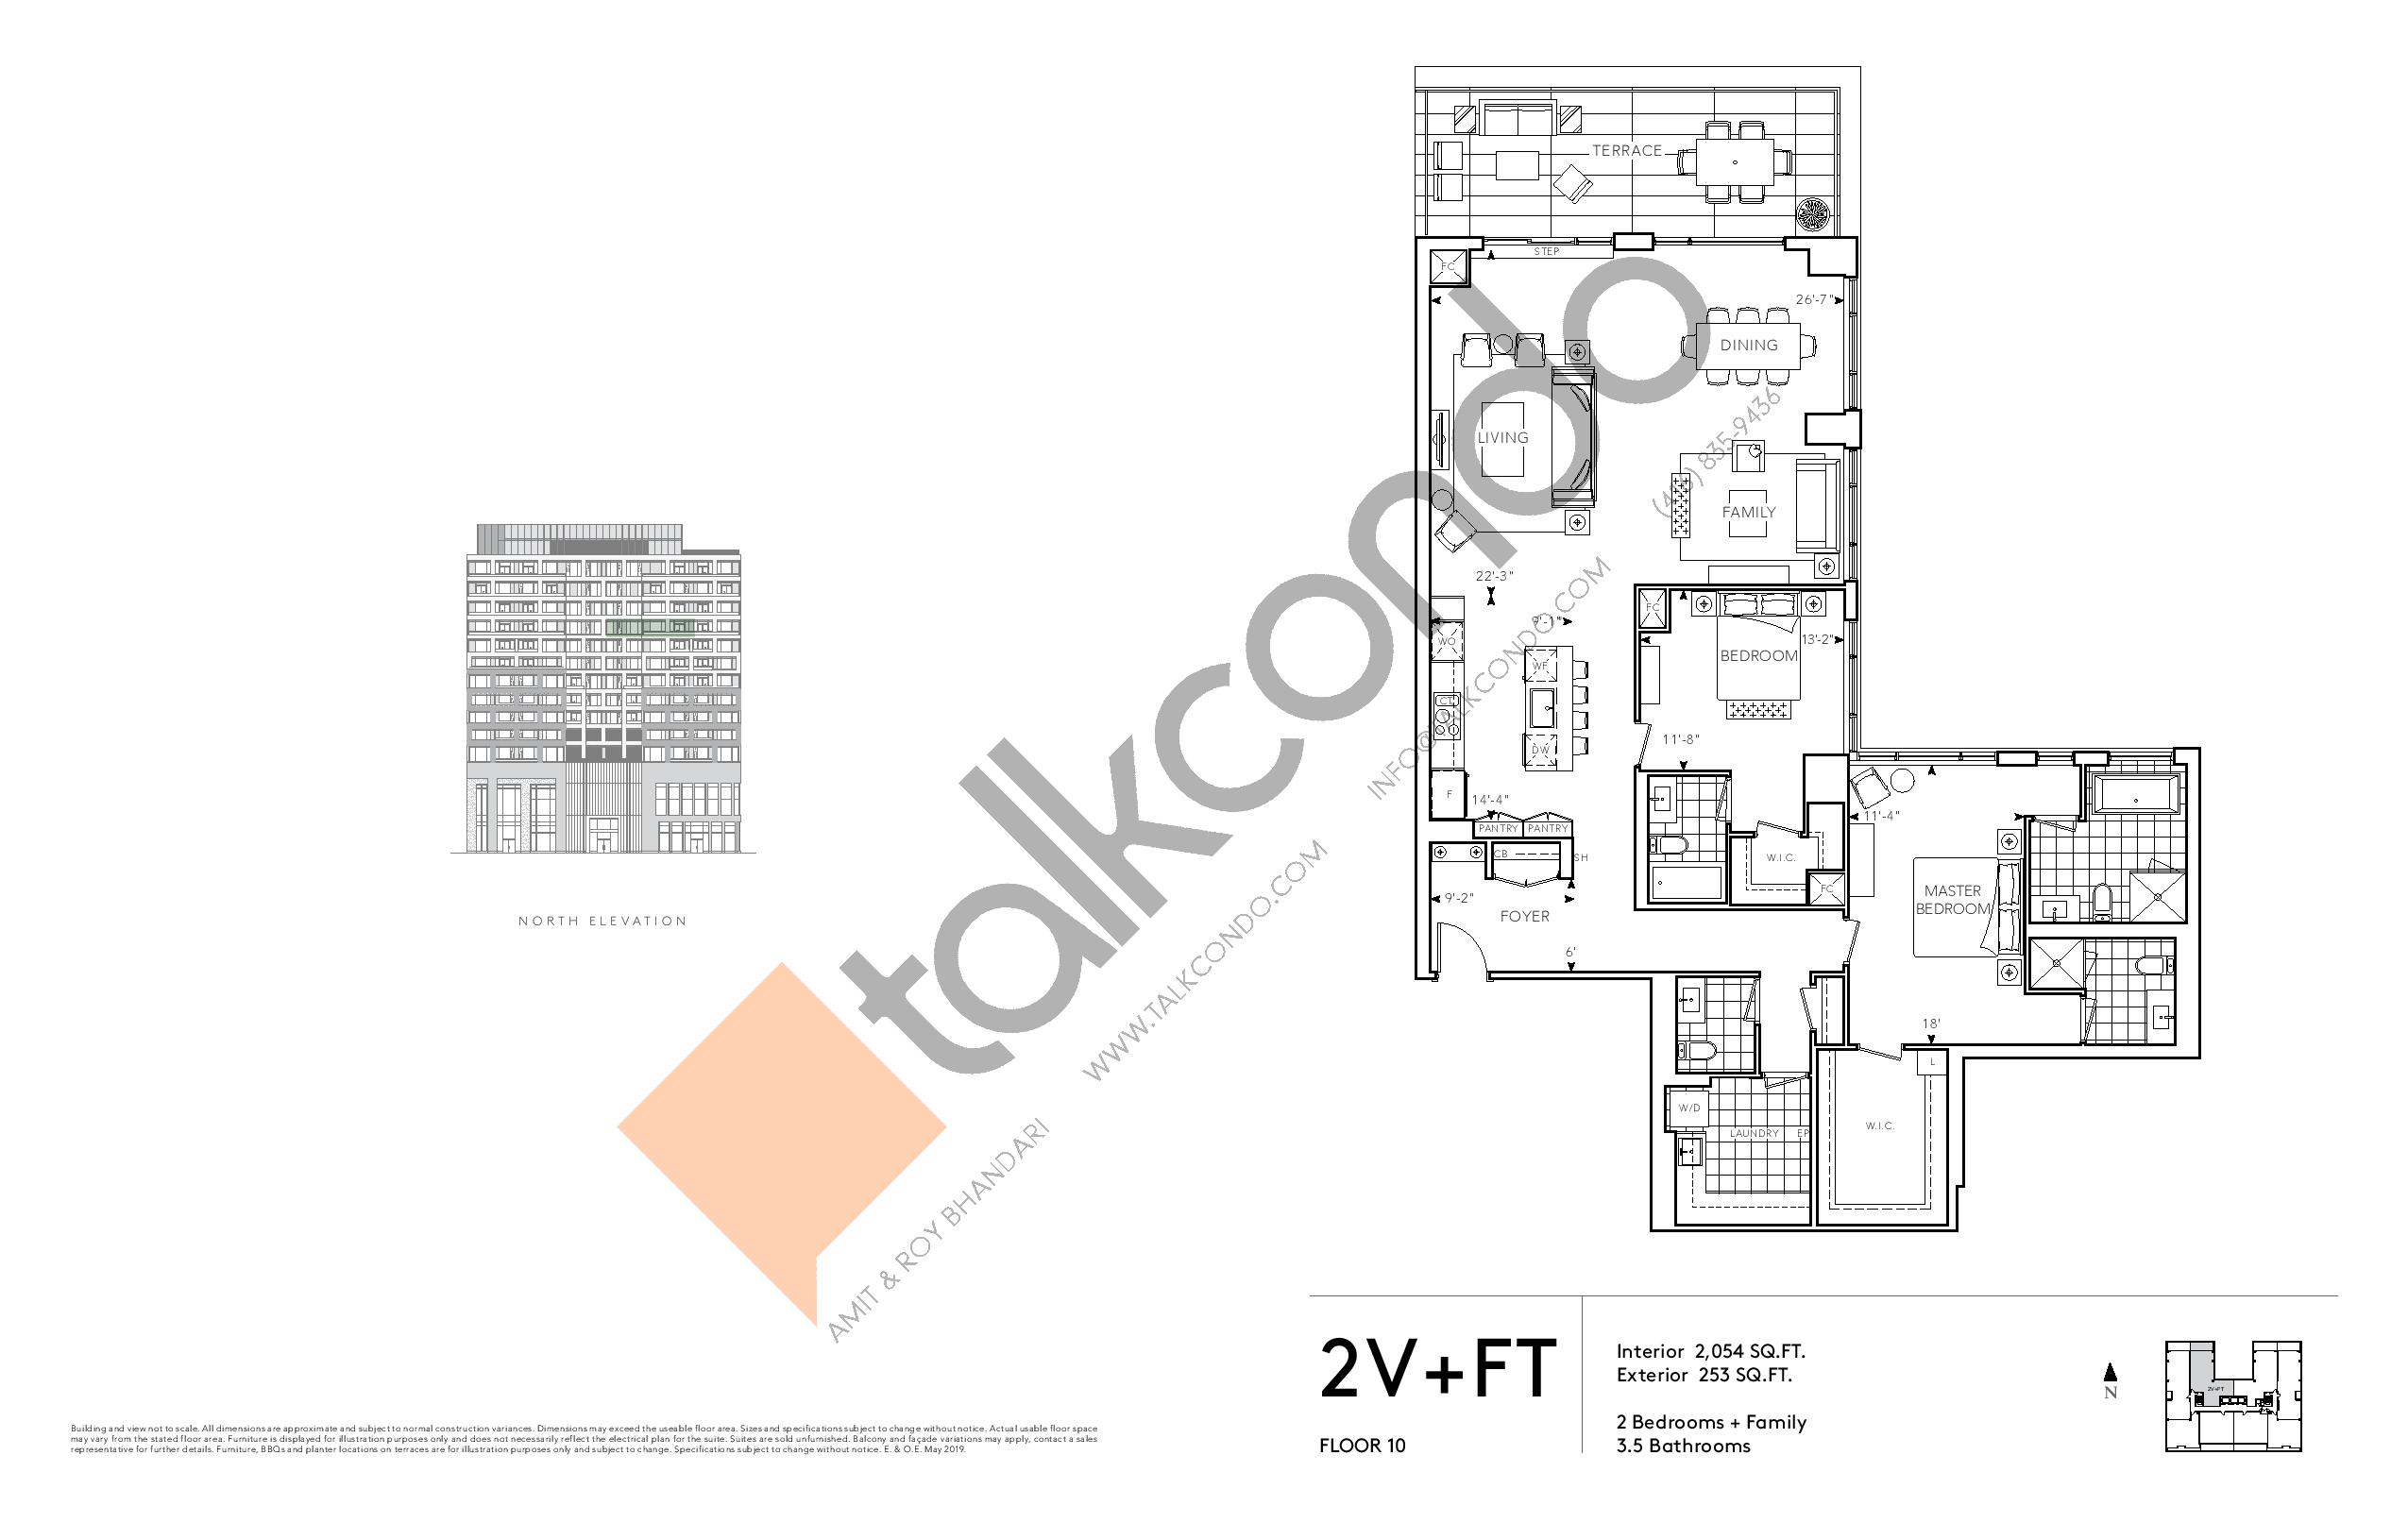 2V+FT - Signature Series Floor Plan at Tridel at The Well Condos - 2054 sq.ft